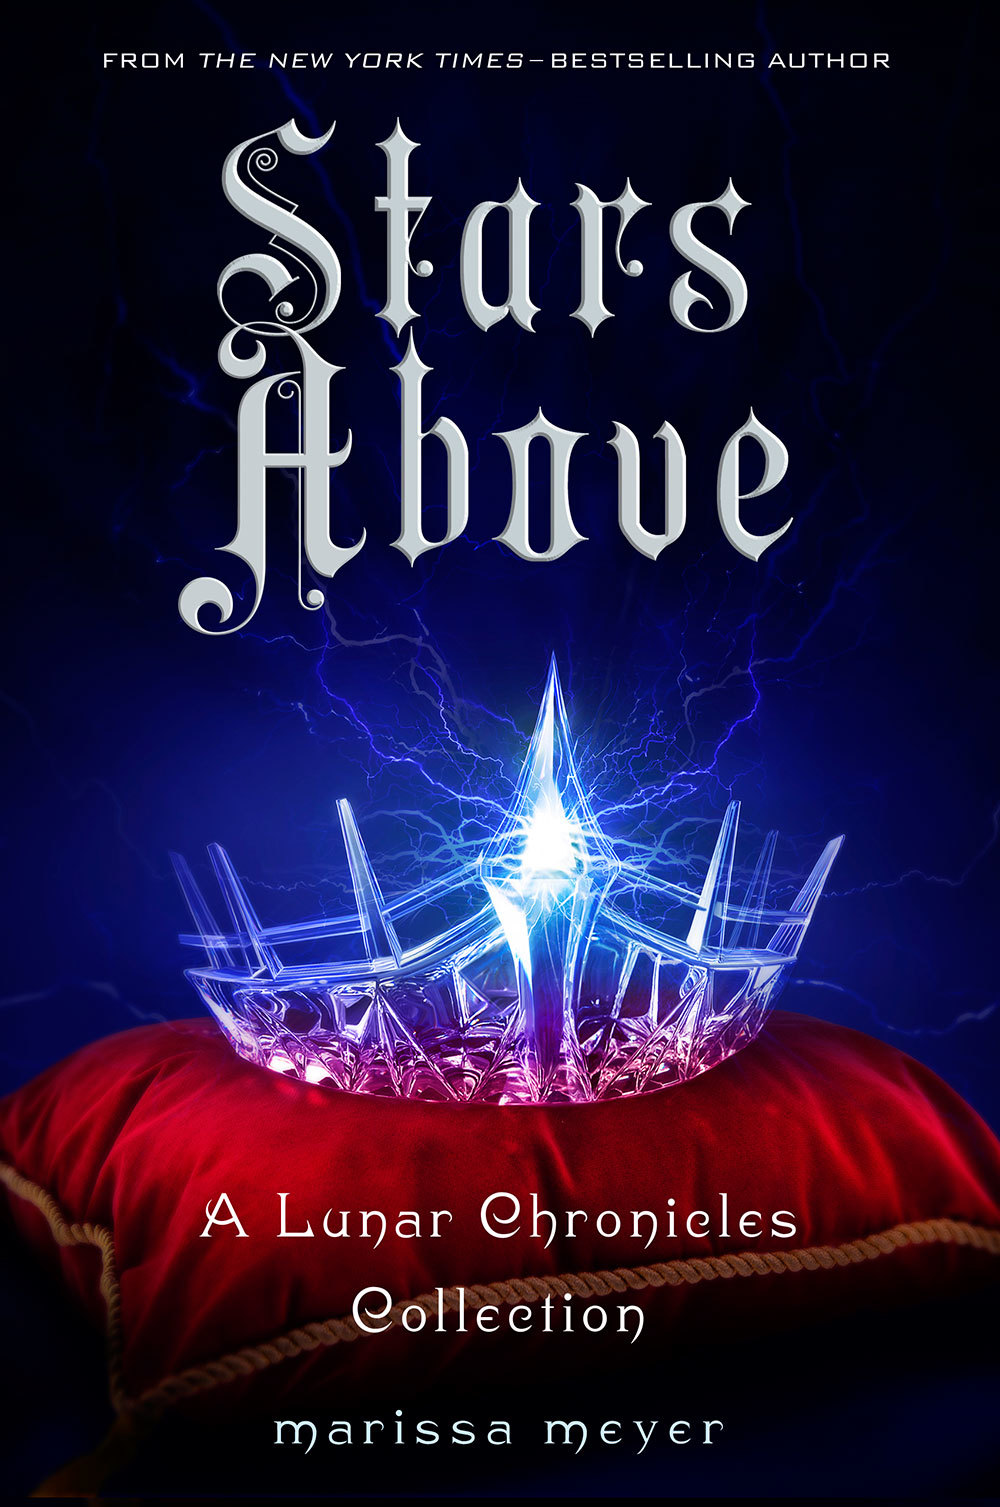 Stars Above (The Lunar Chronicles #0.5, 0.6, 3.1, 4.5) - Marissa Meyer